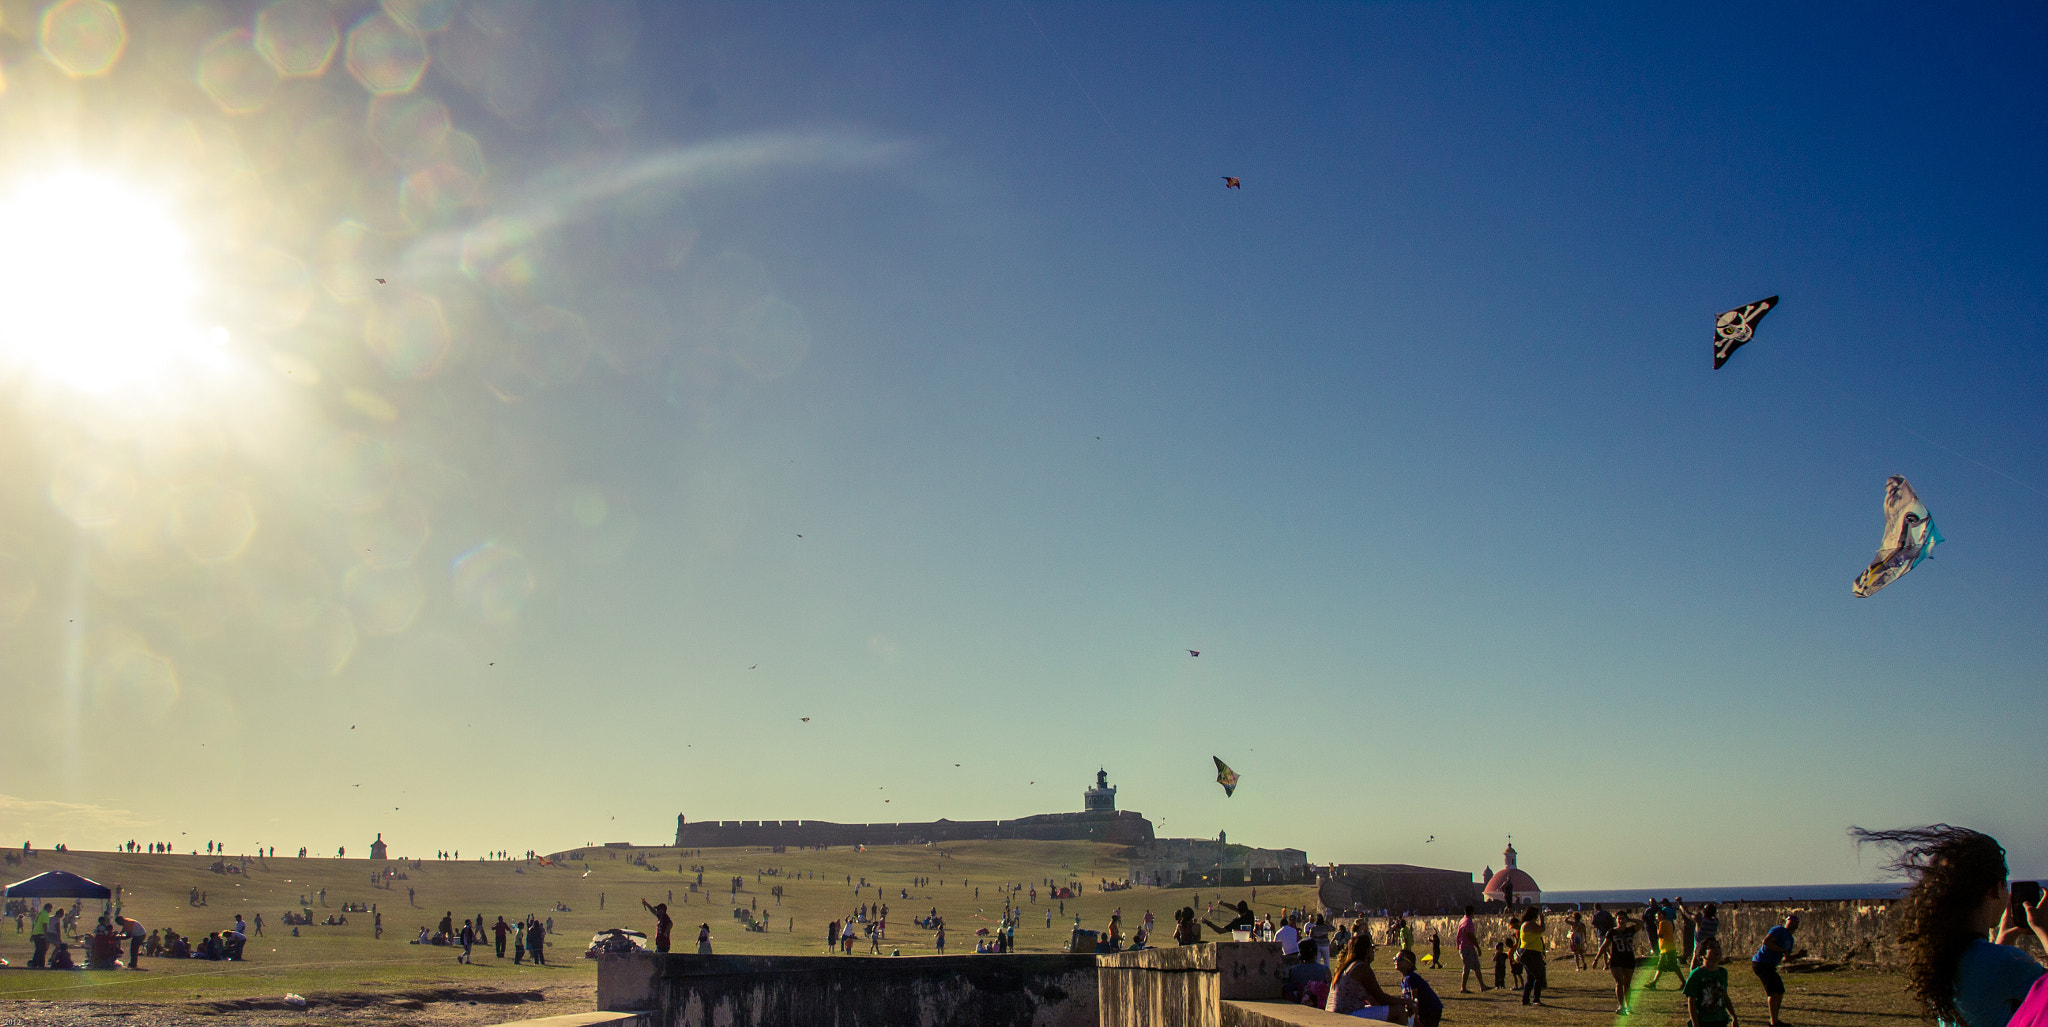 Photograph El Morro Shine by Gonripsi Mobsono on 500px